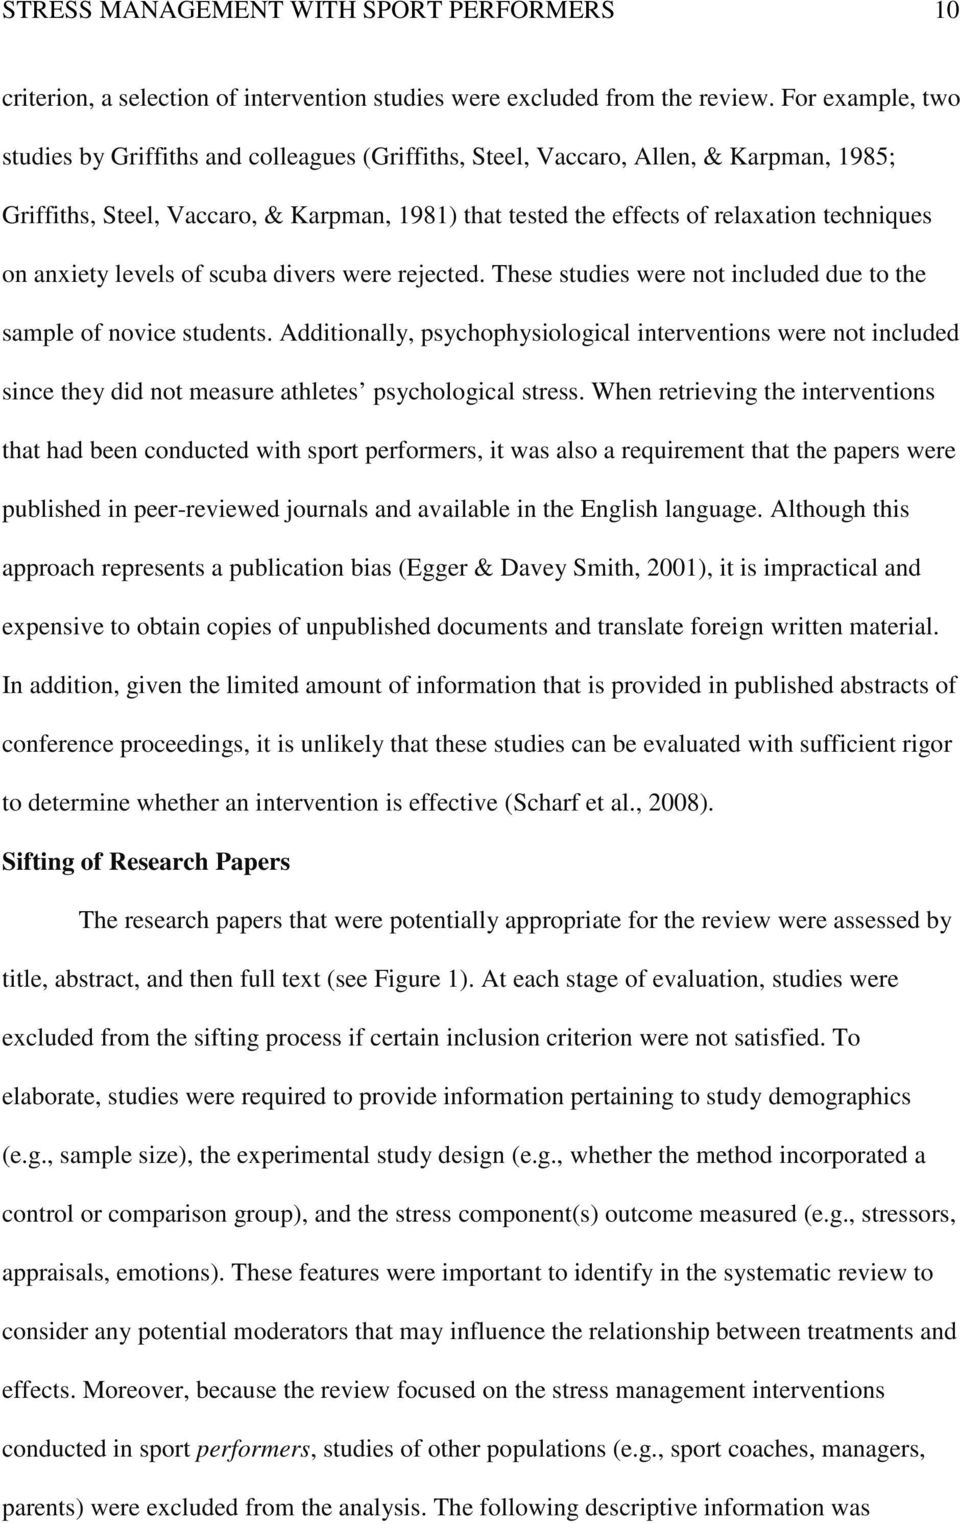 Stress Management With Sport Performers 1 A Systematic Review Of